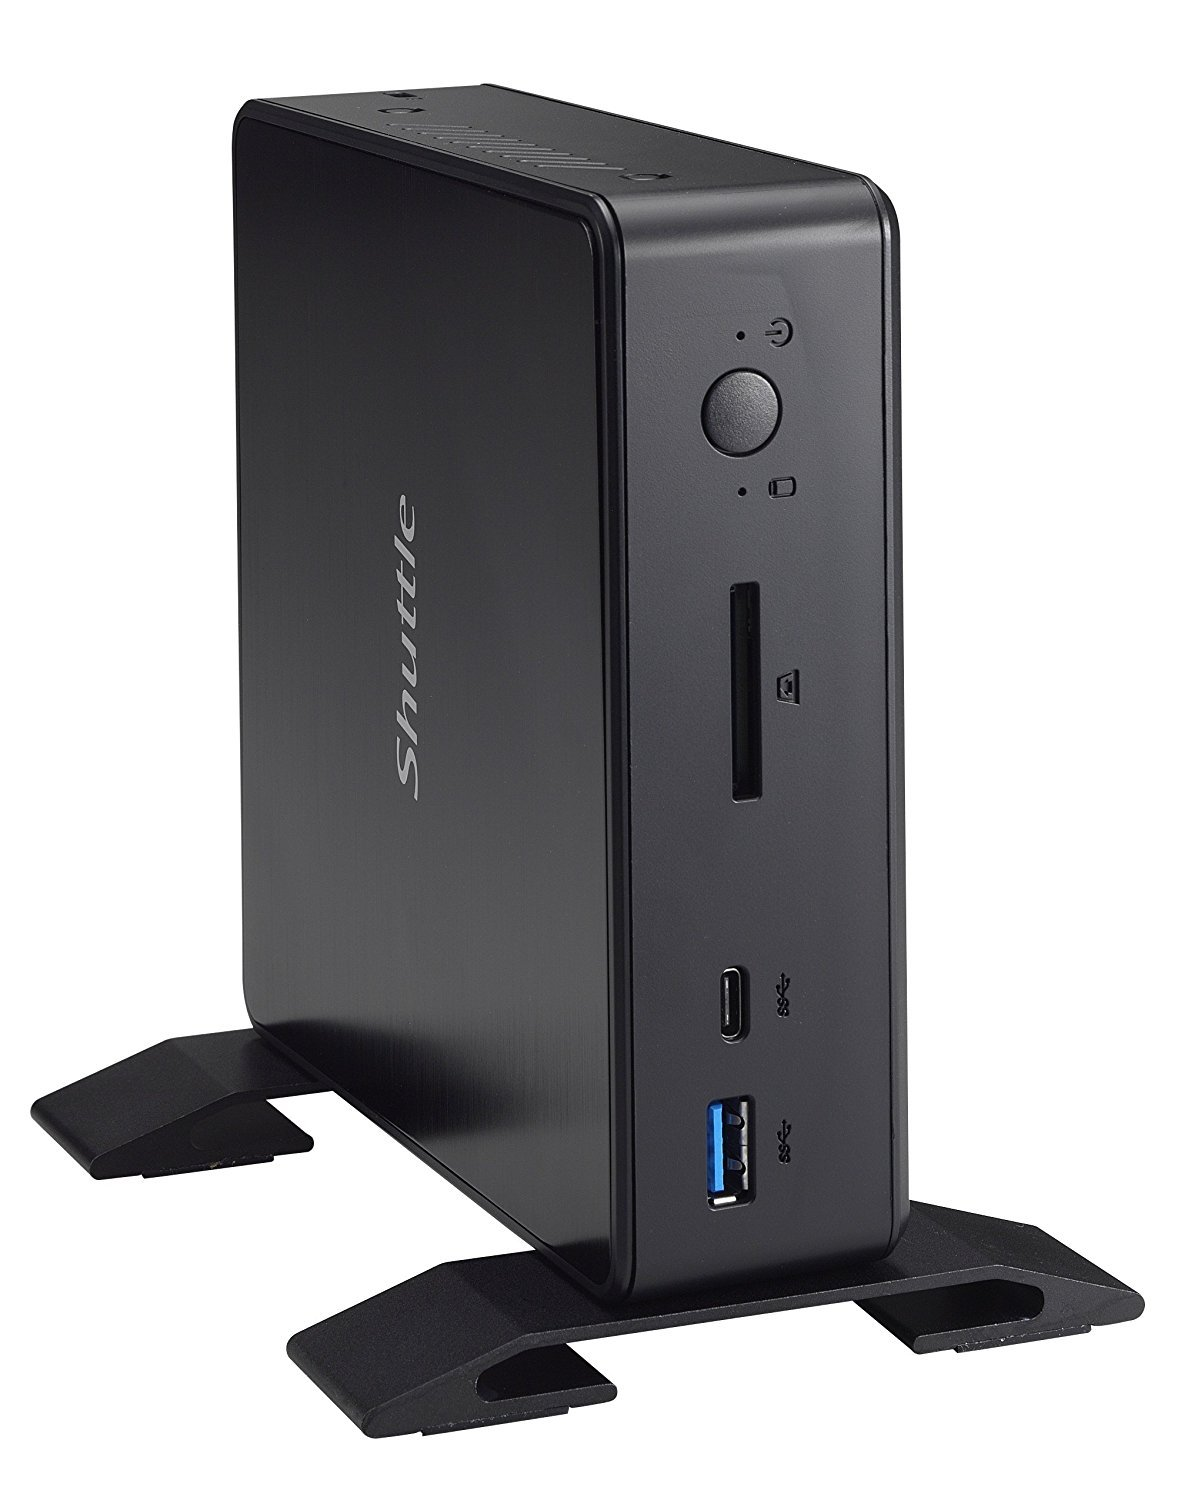 Shuttle XPC nano nc02u7デスクトップコンピュータ – インテルCore i7 (6th Gen) i7 – 6500u 2.50 GHz ddr3l SDRAM – Mini PC B01M5H9UHS